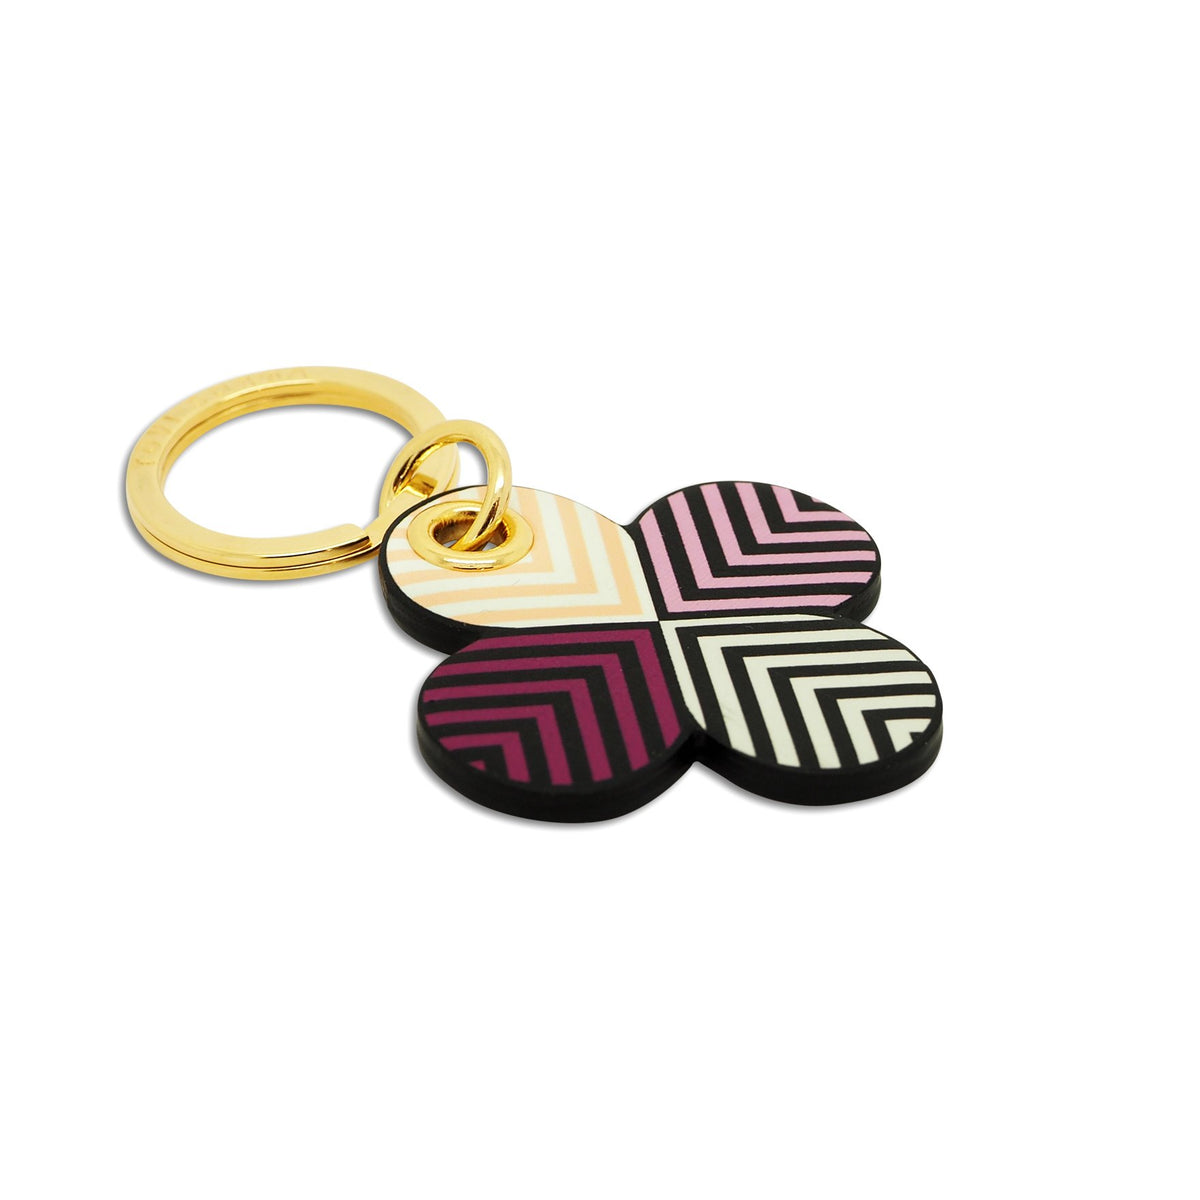 Leather Contactless Payment Key Ring / Bag Charm - Lucky Lilac Clover Tovi Sorga